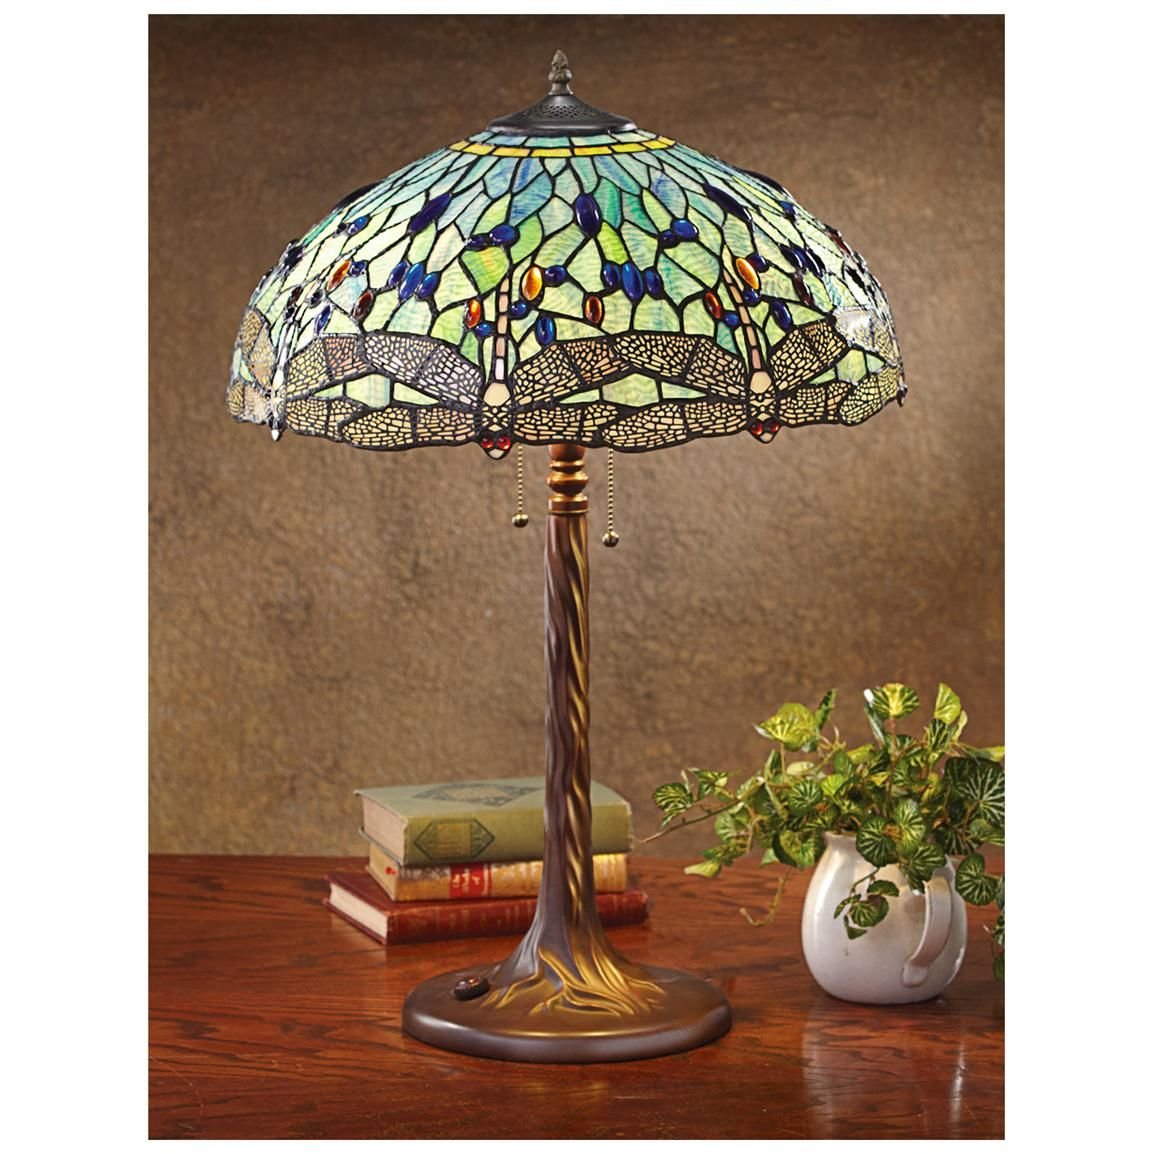 Dragonfly tiffany style table lamp lighting pinterest dragonfly tiffany style table lamp geotapseo Gallery